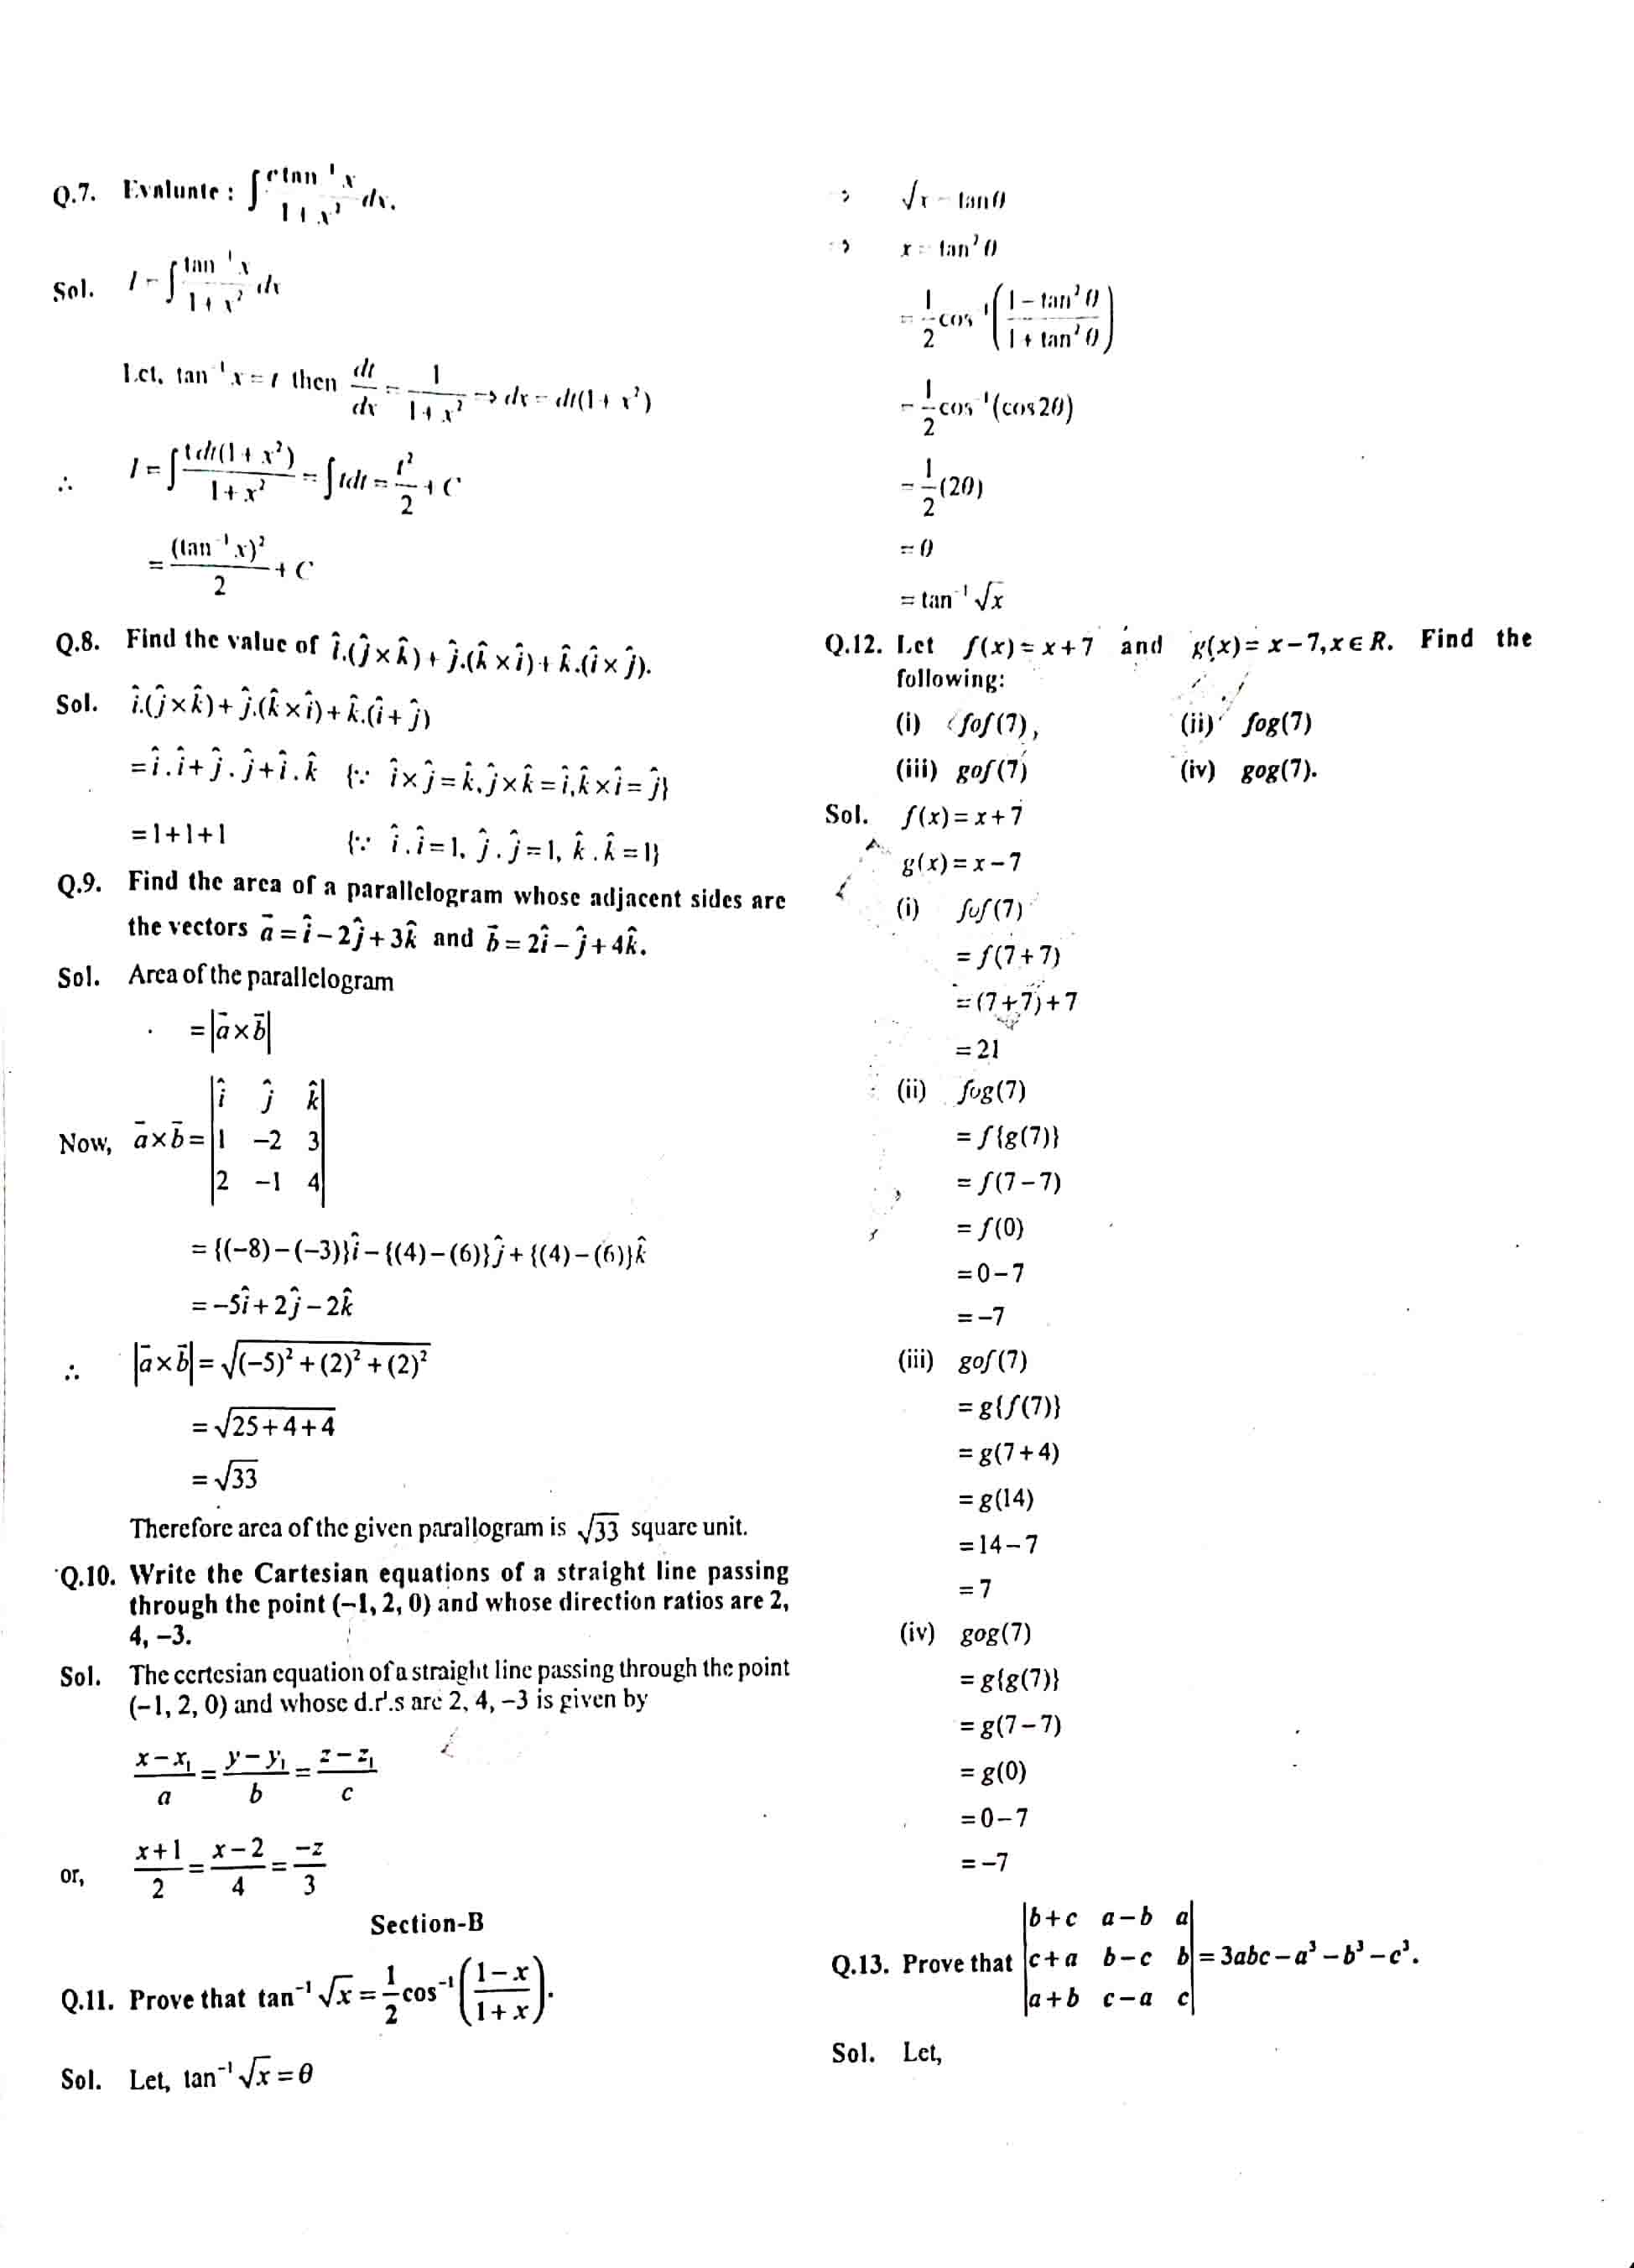 JAC Class 12 math 2015 Question Paper 02